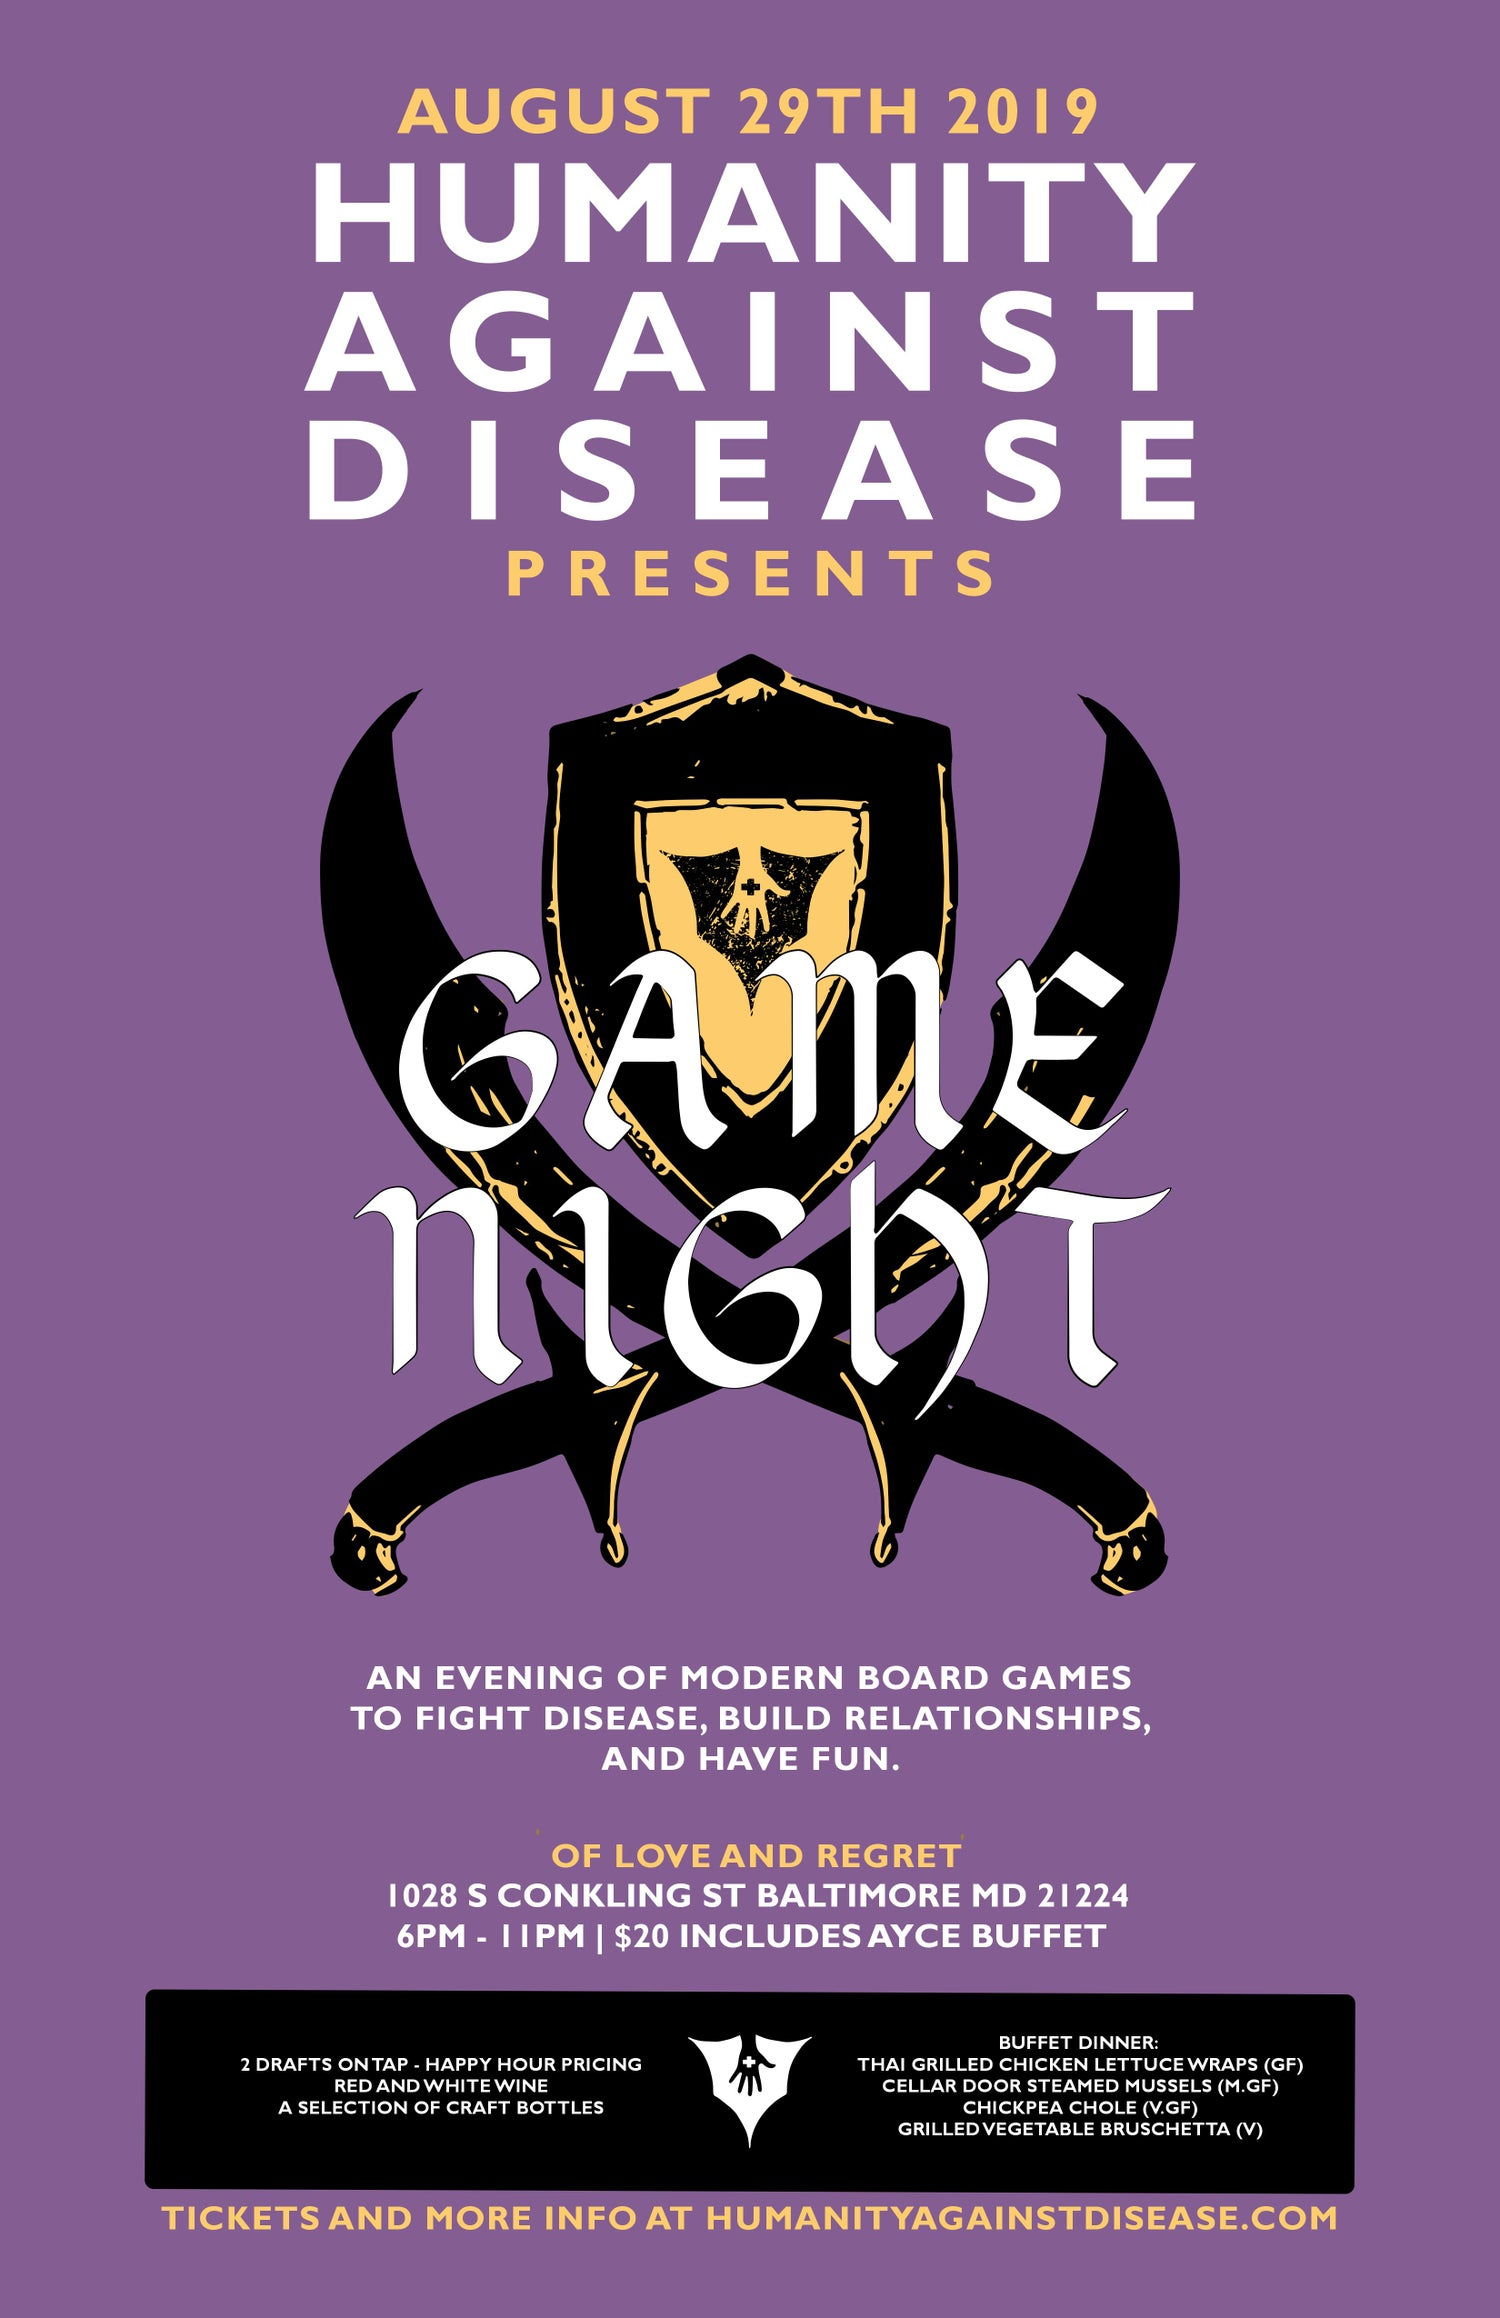 Image of Board Game Night Against Disease Ticket